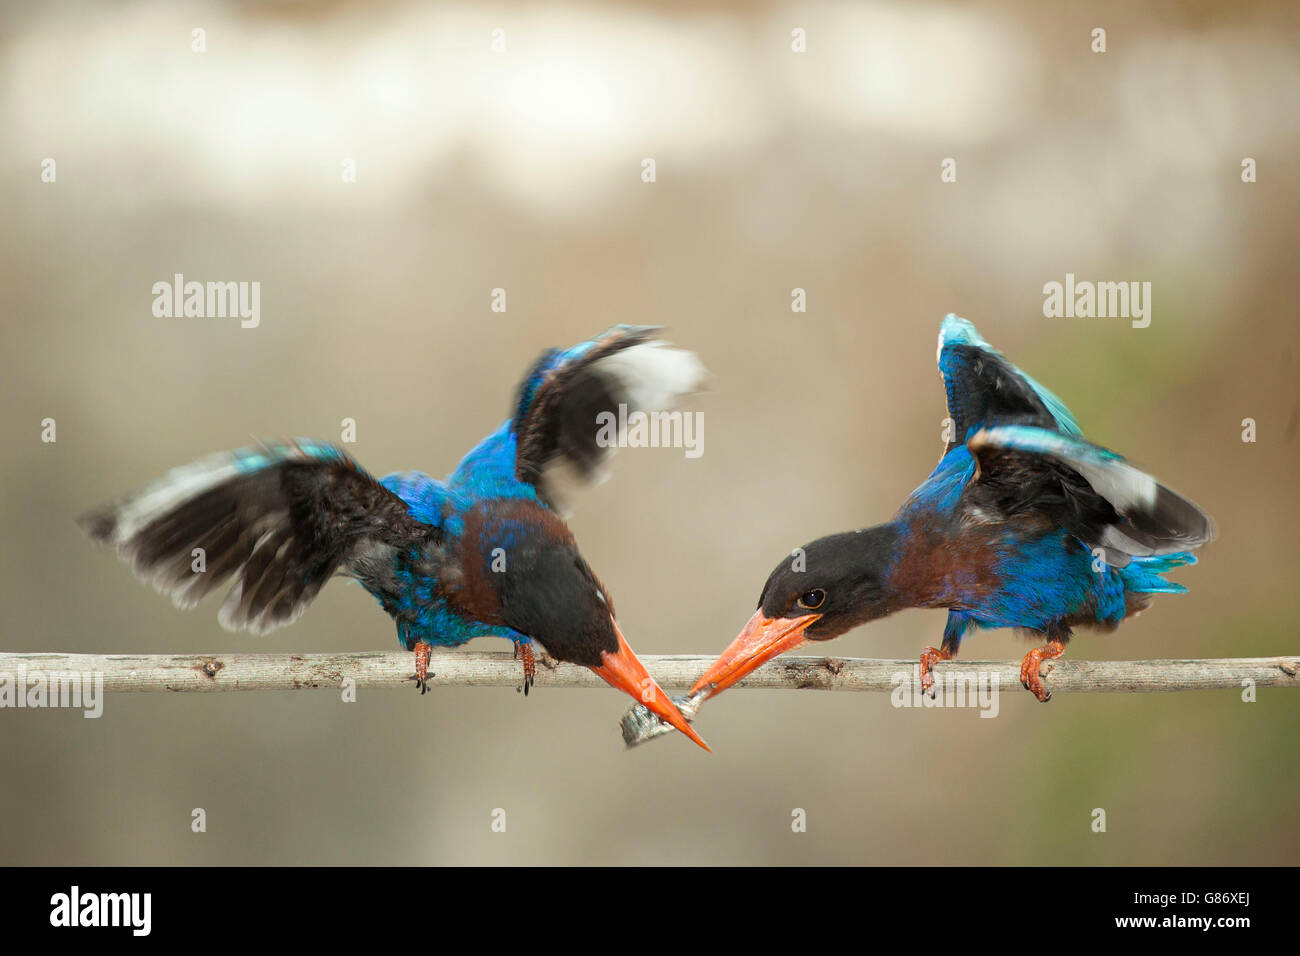 Two kingfisher birds on branch feeding on fish - Stock Image